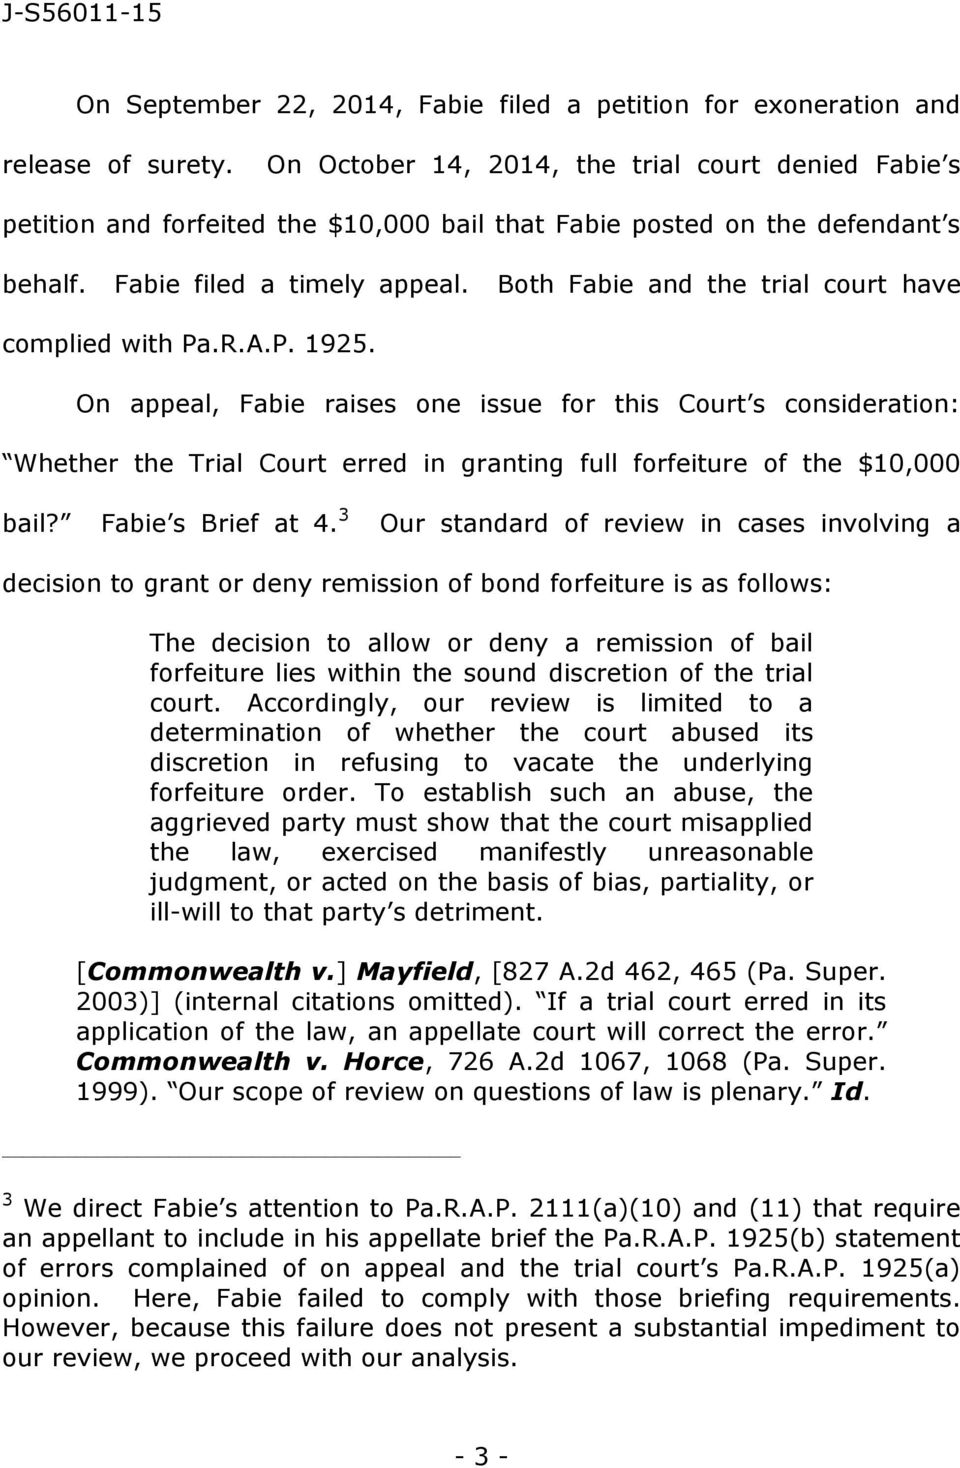 Both Fabie and the trial court have complied with Pa.R.A.P. 1925.